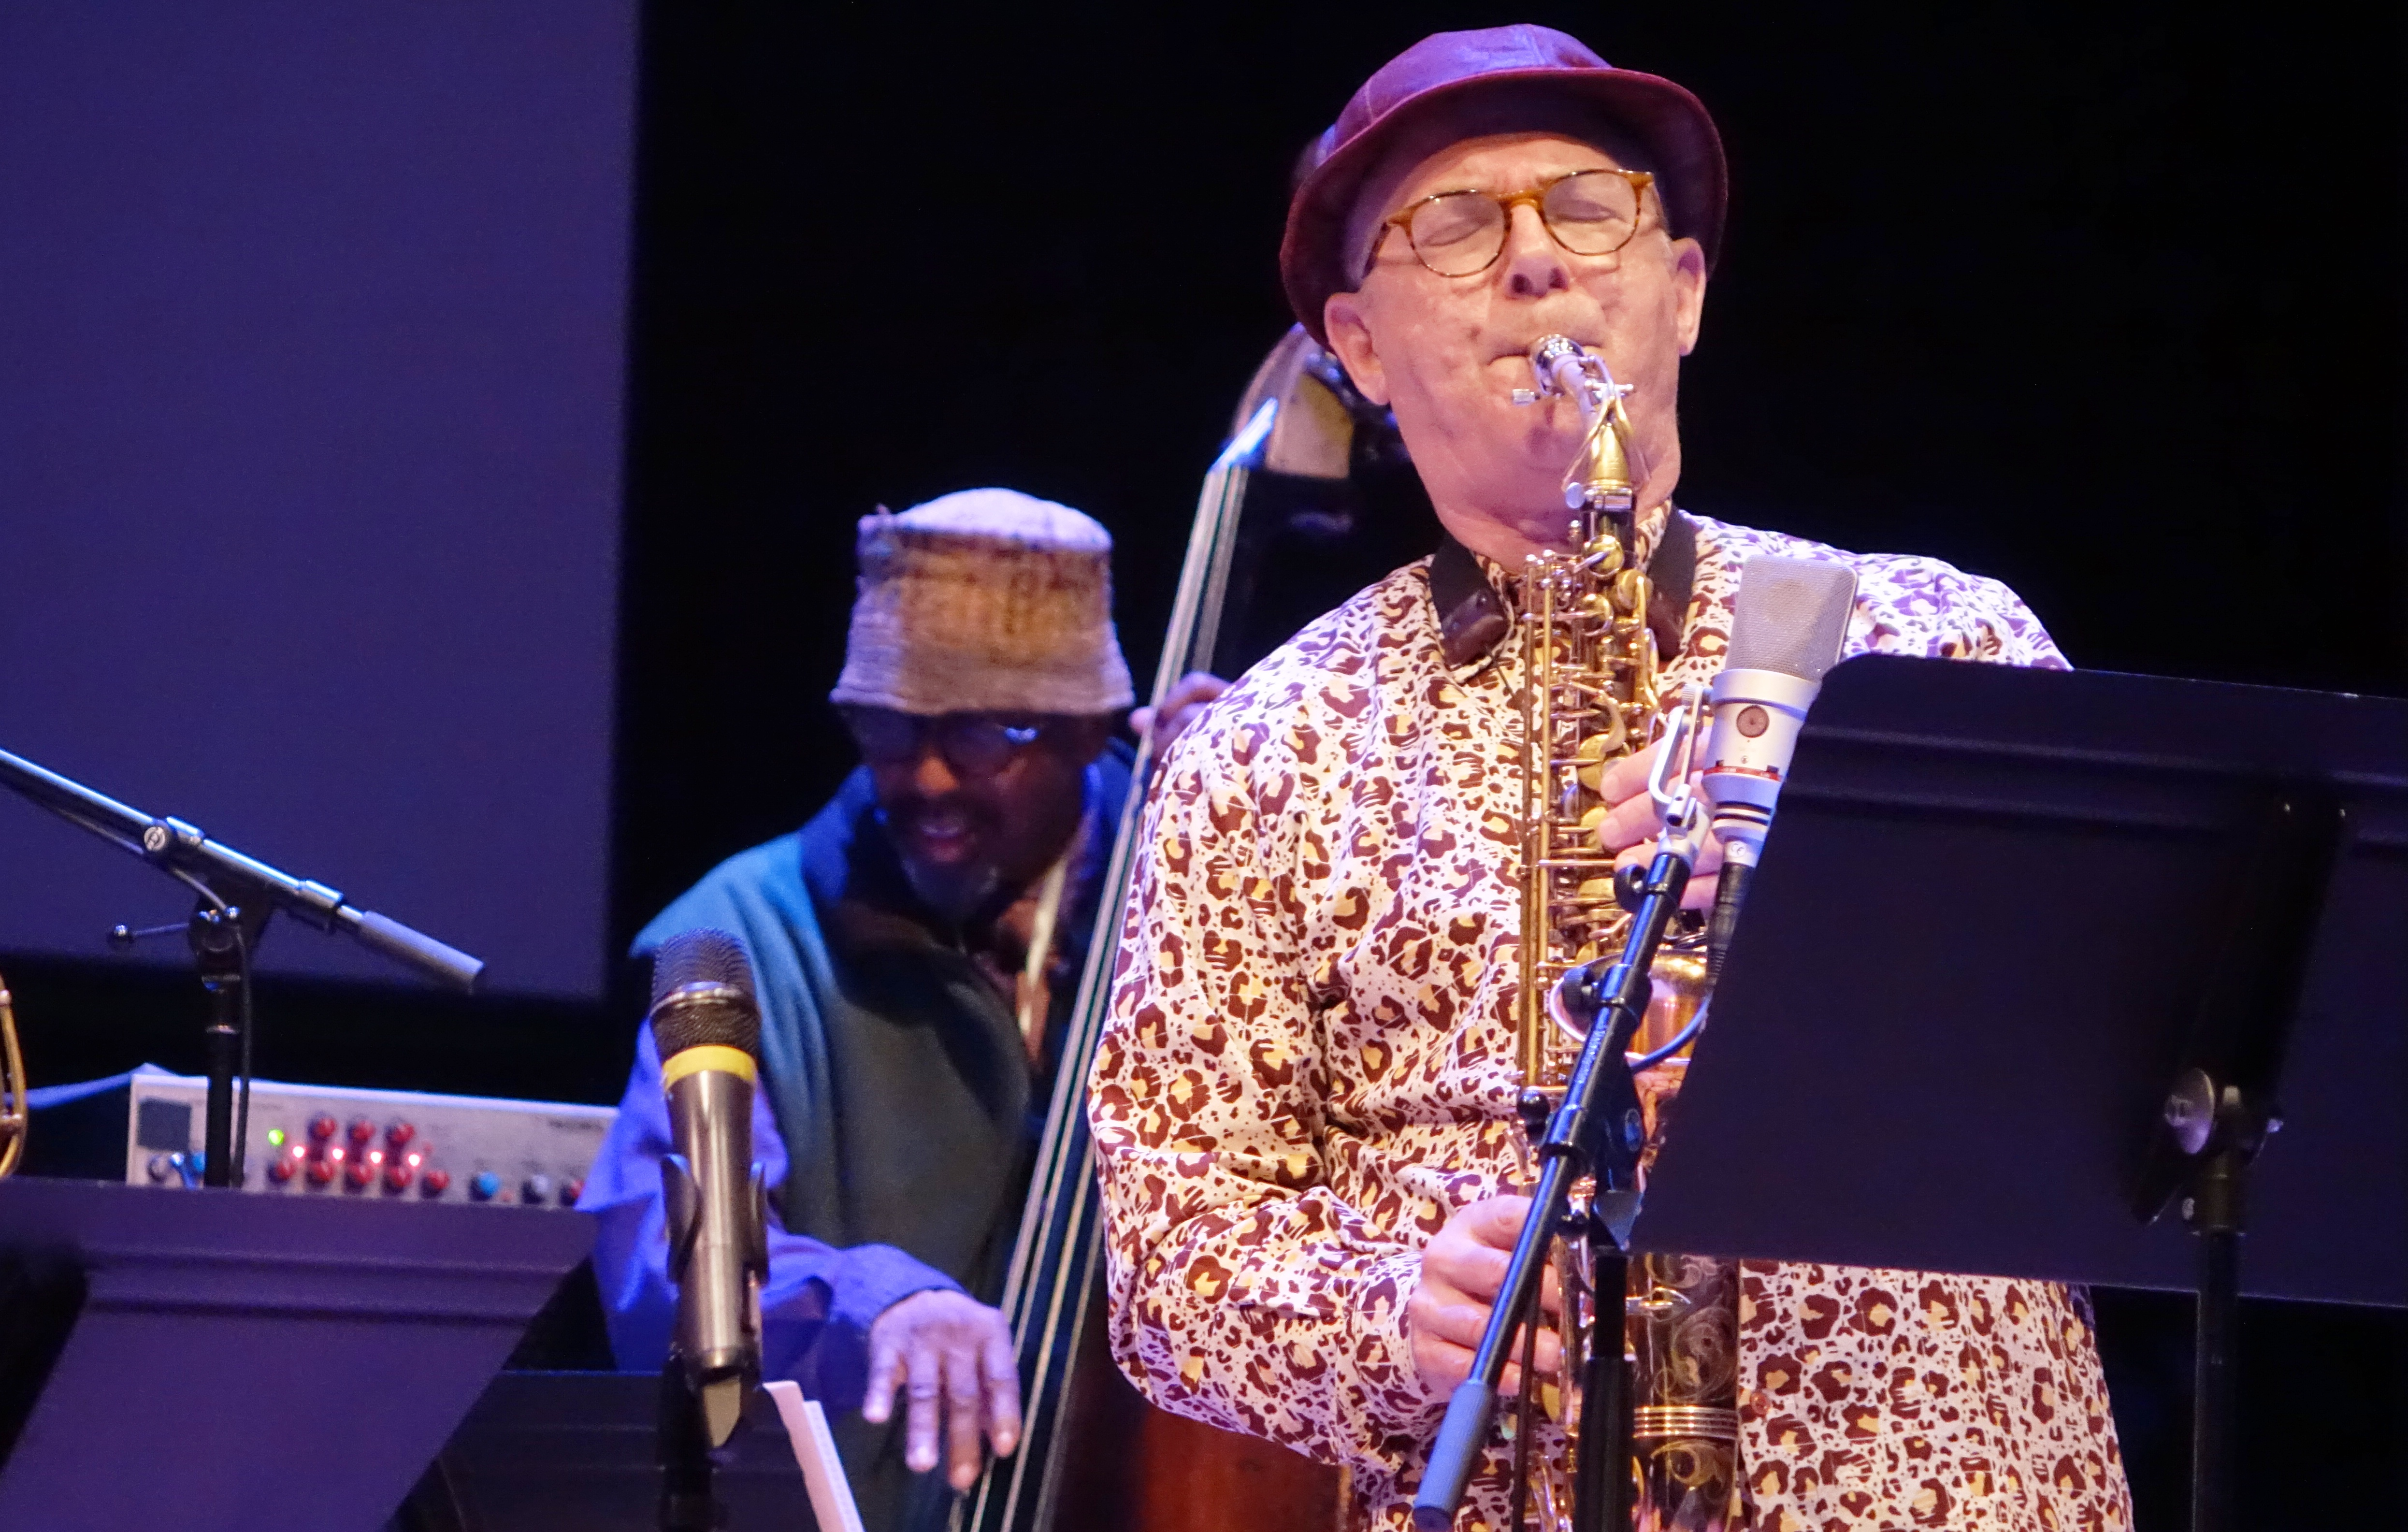 William Parker and Bobby Zankel at the Vision Festival in Roulette, Brooklyn in June 2019